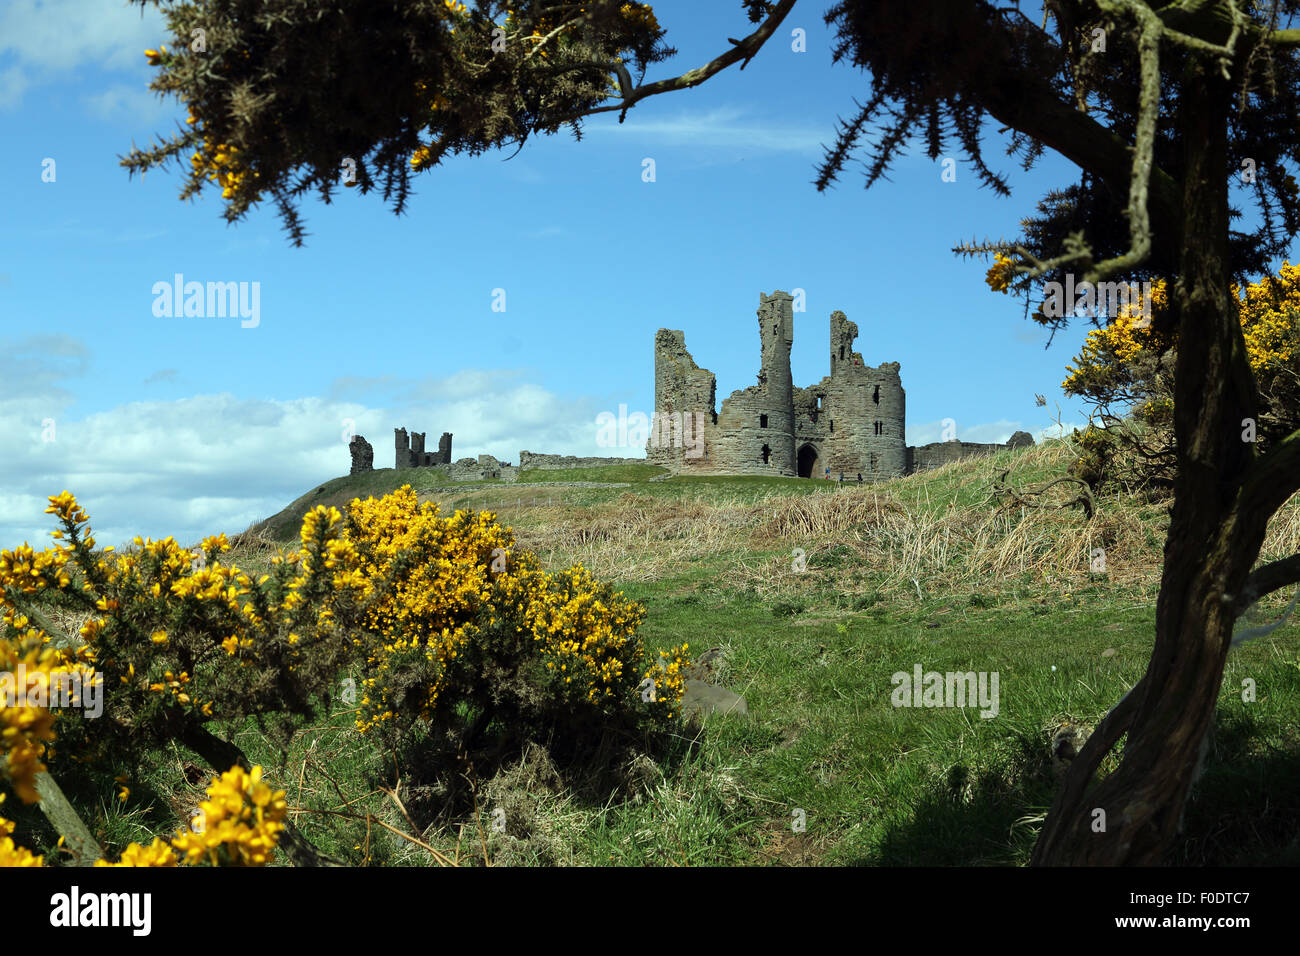 Dunstanburgh Castle, Northumberland, framed by a tree and Gorse in flower in the foreground Stock Photo